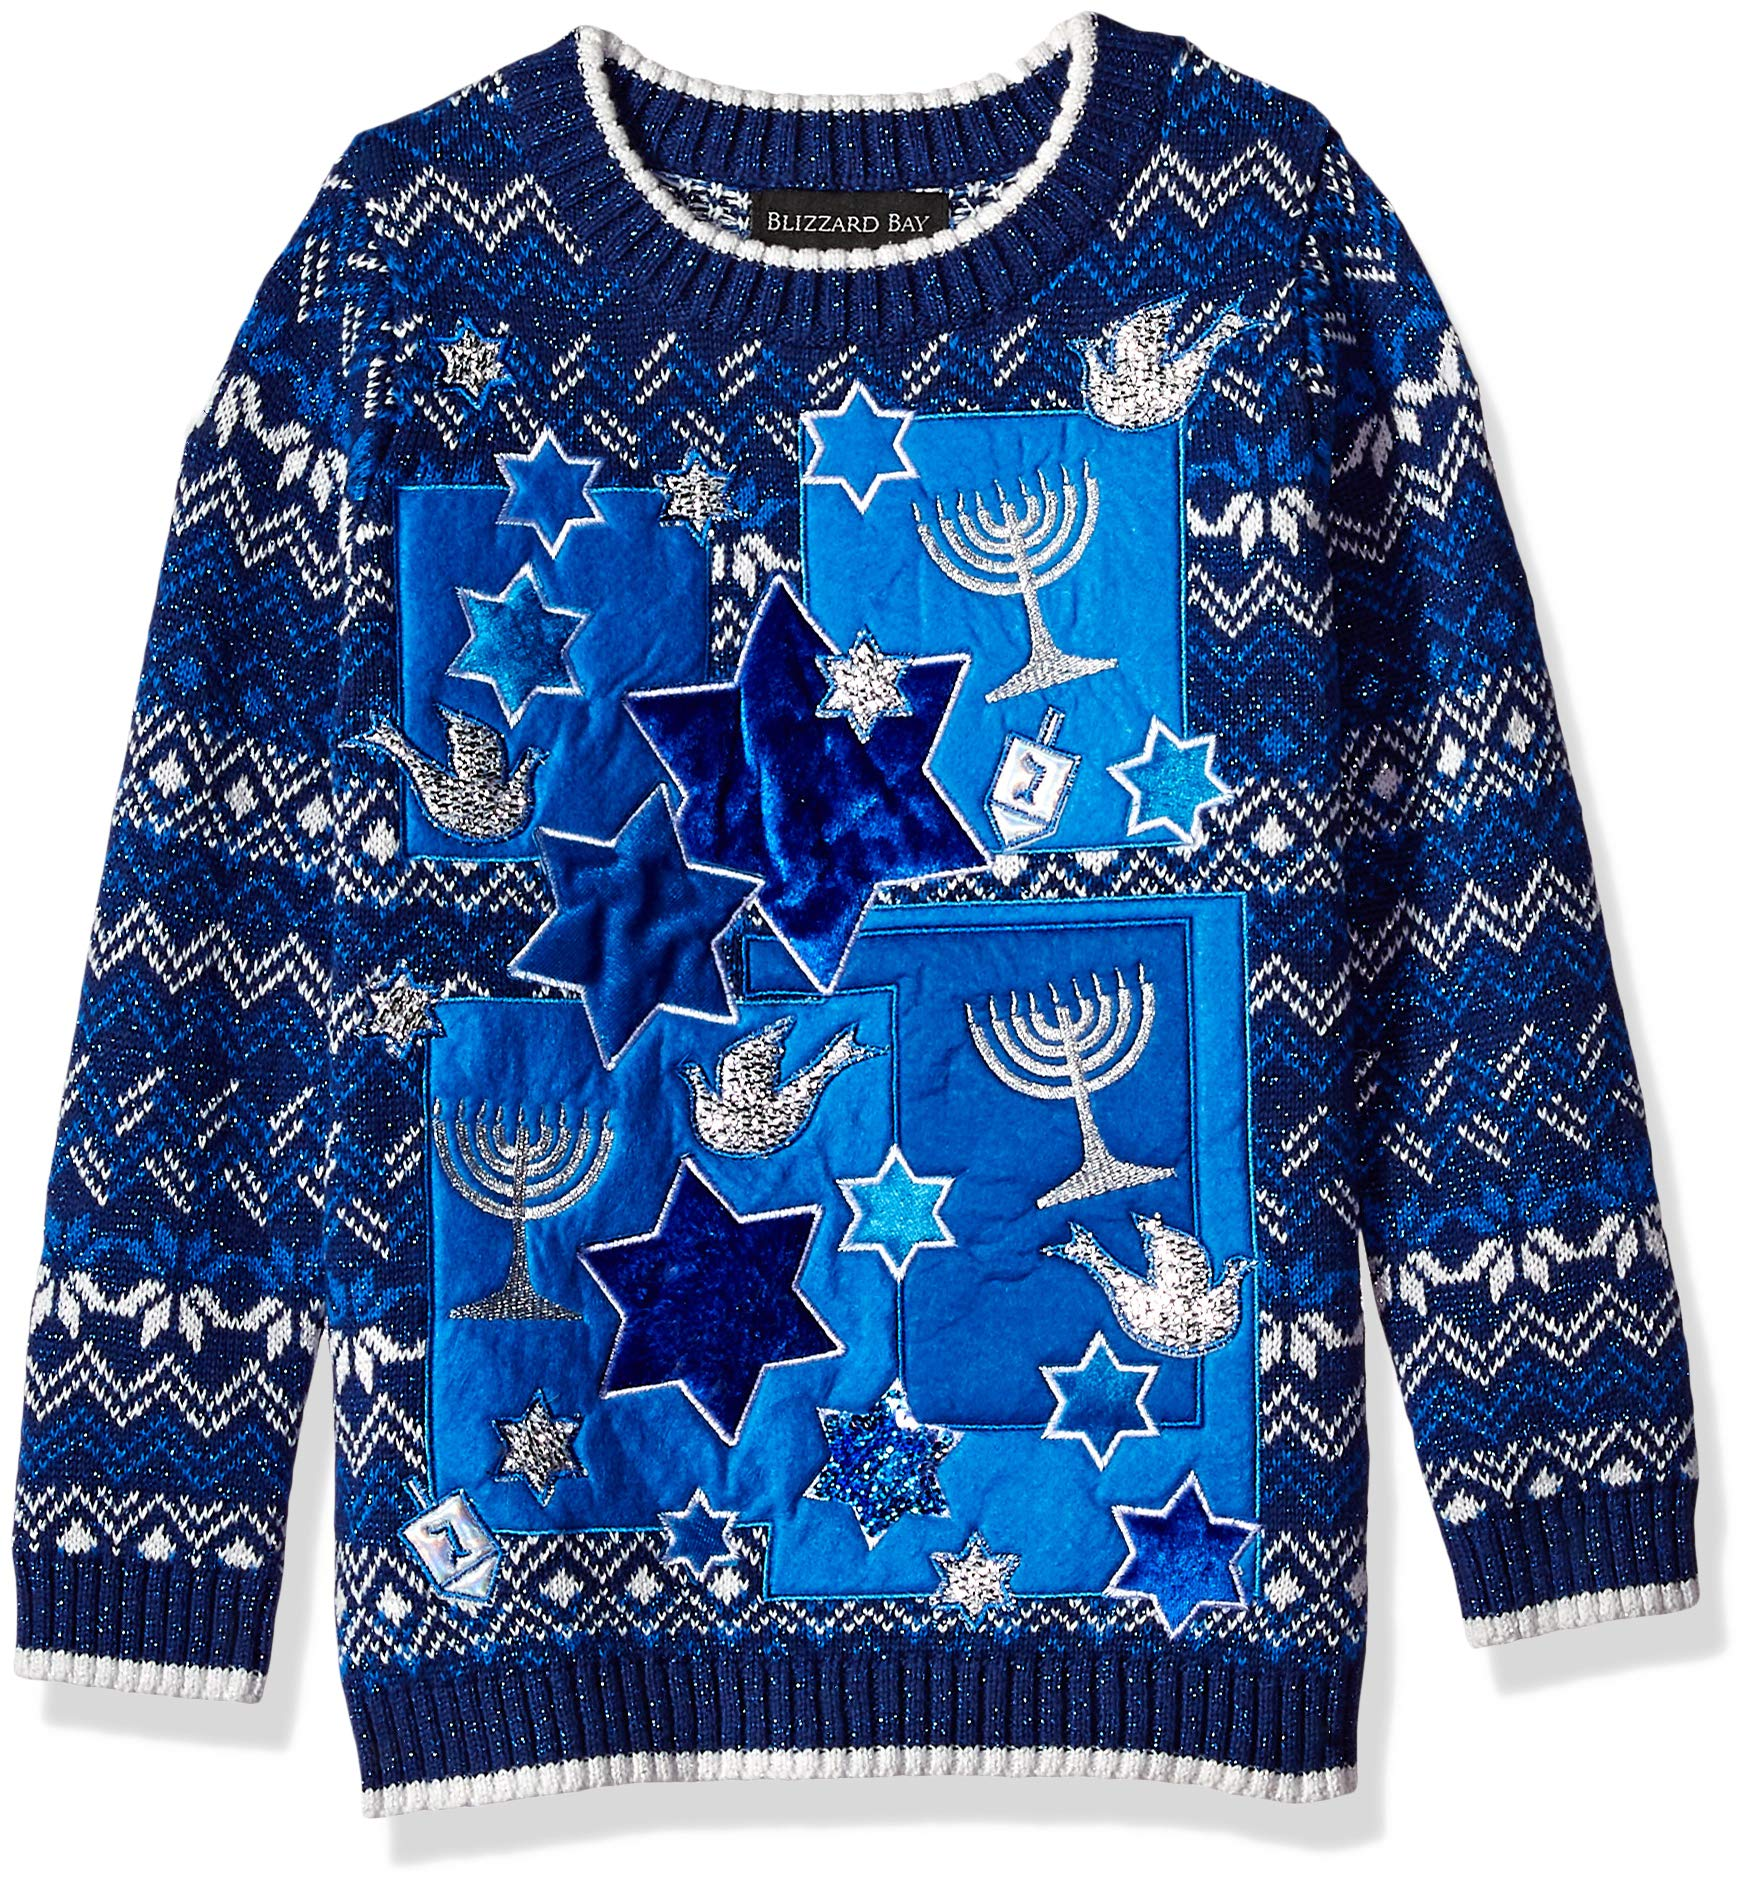 Blizzard Bay Boys' Toddler Long Sleeve Crew Neck Stars Ugly Christmas Sweater, Blue Combo, 6X/XL